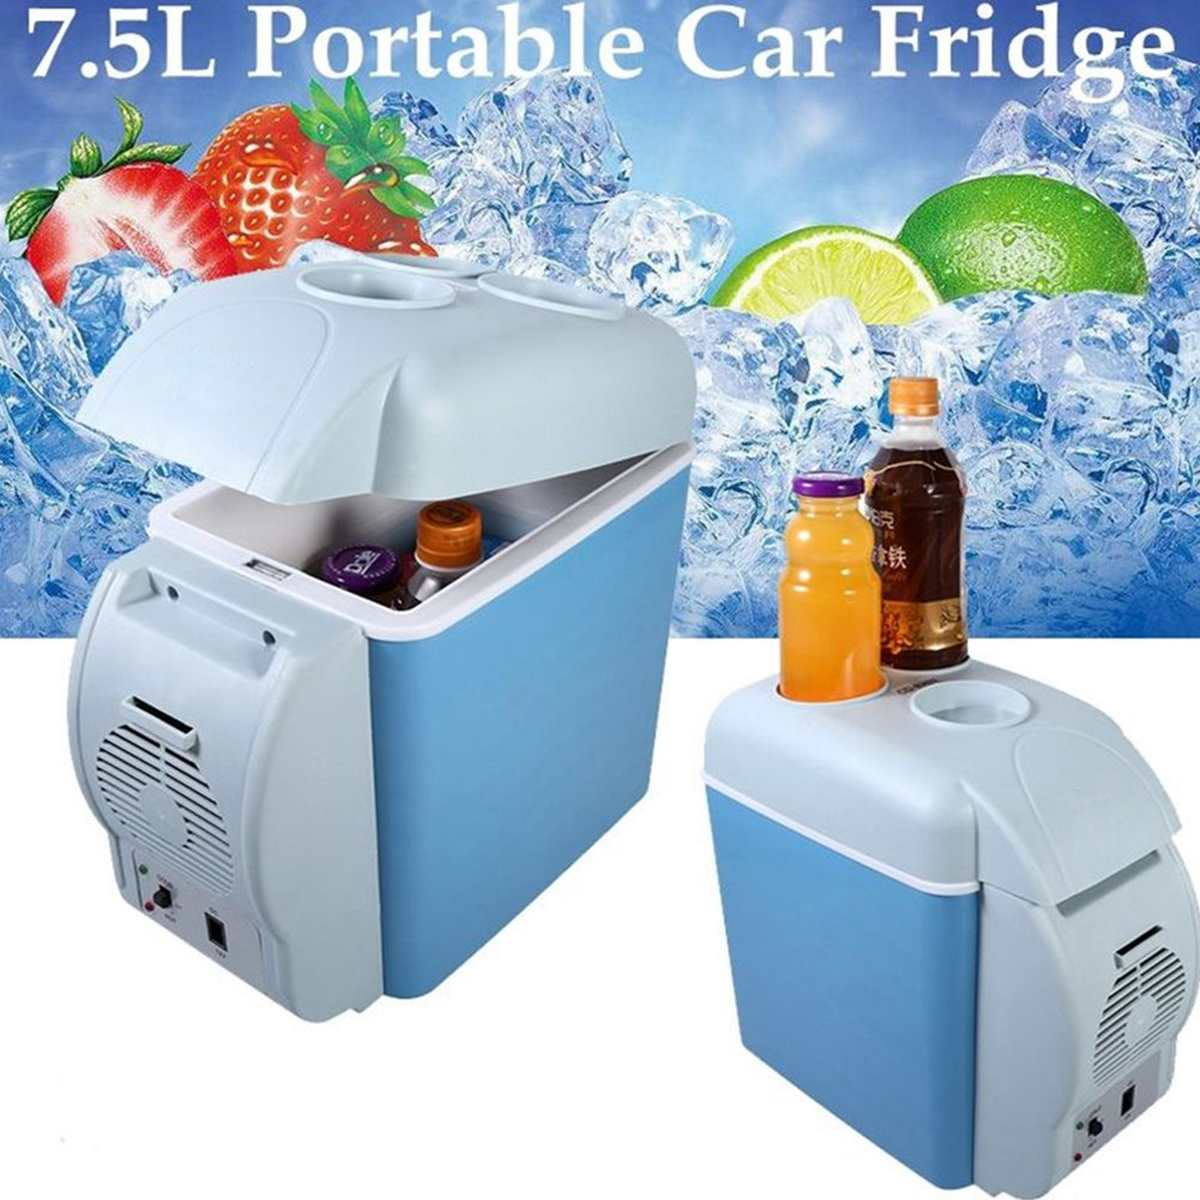 7.5L 12V Truck car fridge freezer Car Freezer Fridge Travel Camping UK